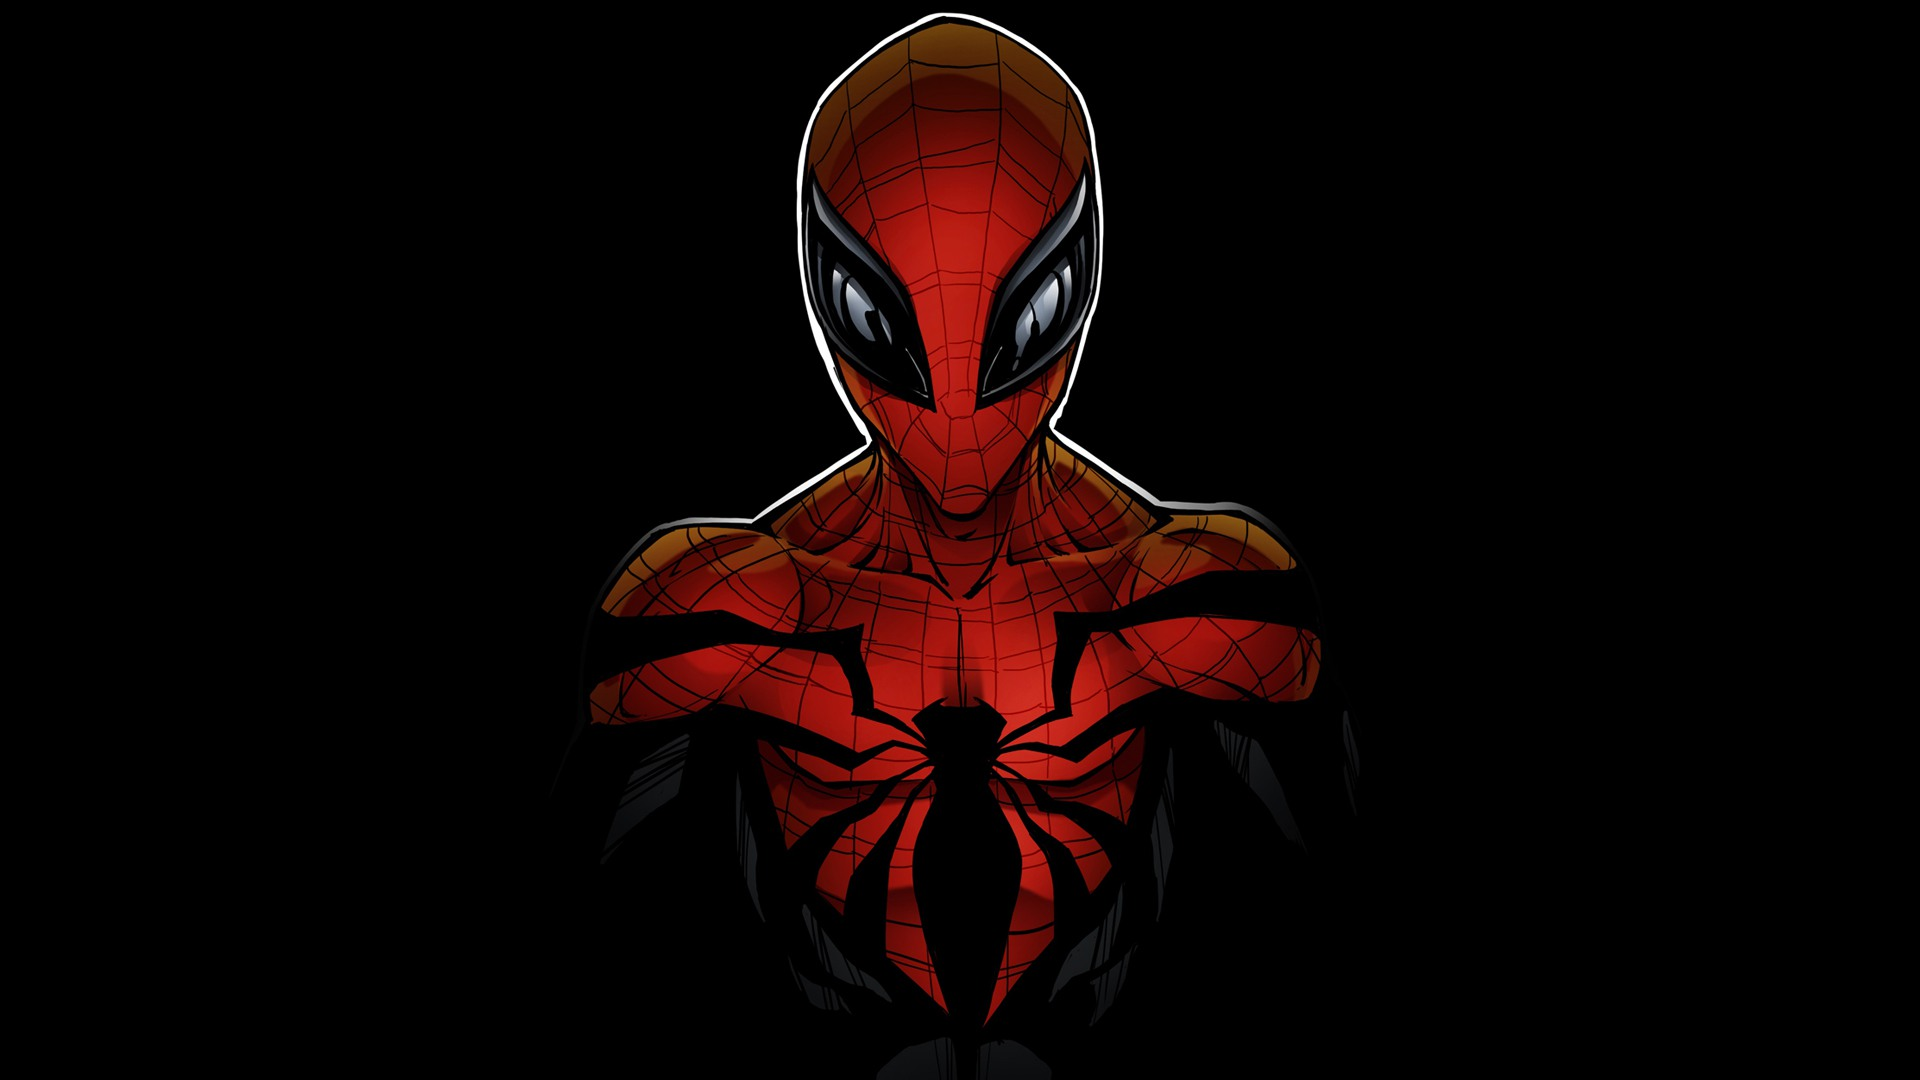 spiderman full hd wallpaper and background image | 1920x1080 | id:794329